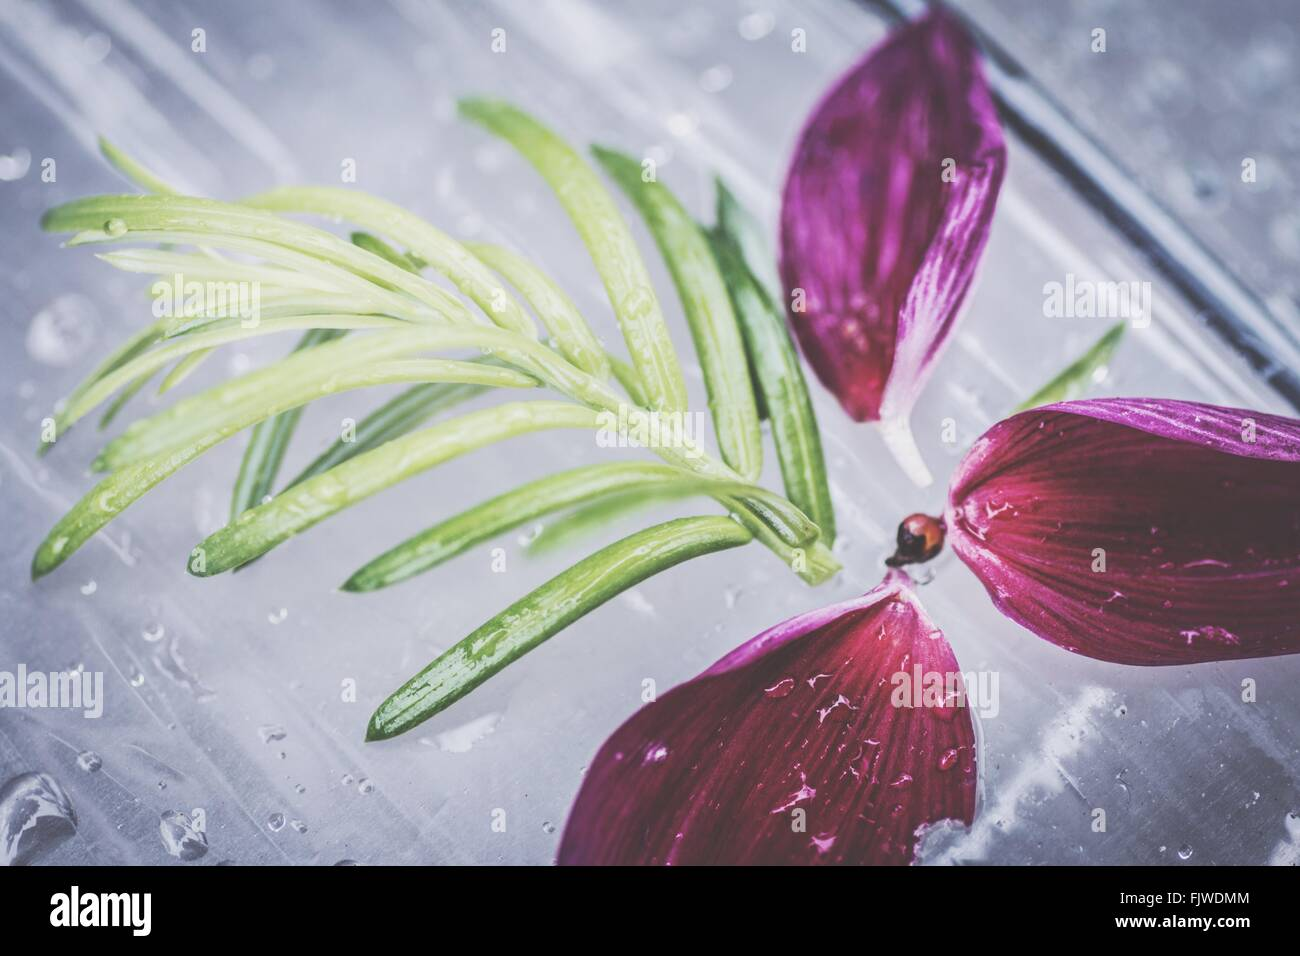 Close-Up Of Wet Magenta Petals And Leaves On Glass - Stock Image